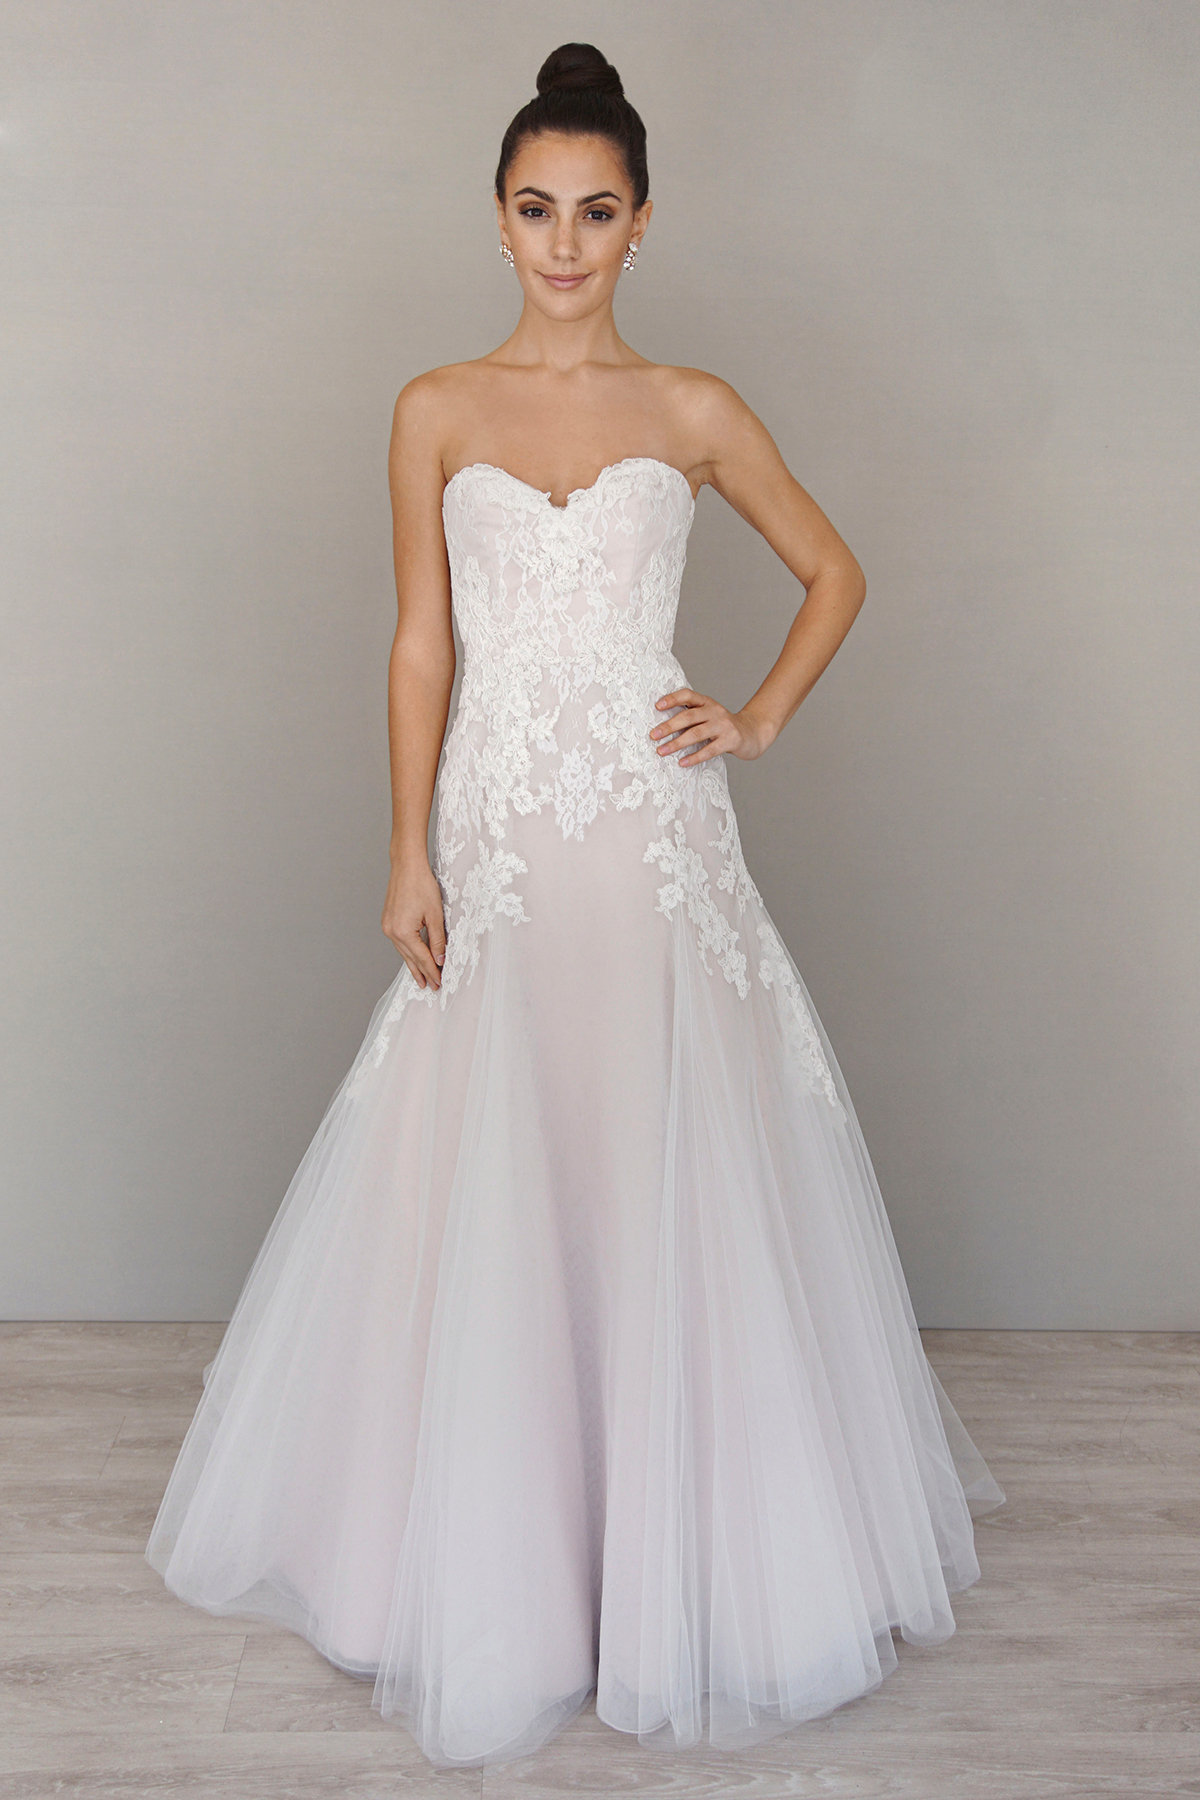 Cheap formal dresses perth choice image dresses design ideas cheap formal dresses perth images dresses design ideas affordable bridesmaid dresses perth image collections braidsmaid alvina ombrellifo Gallery